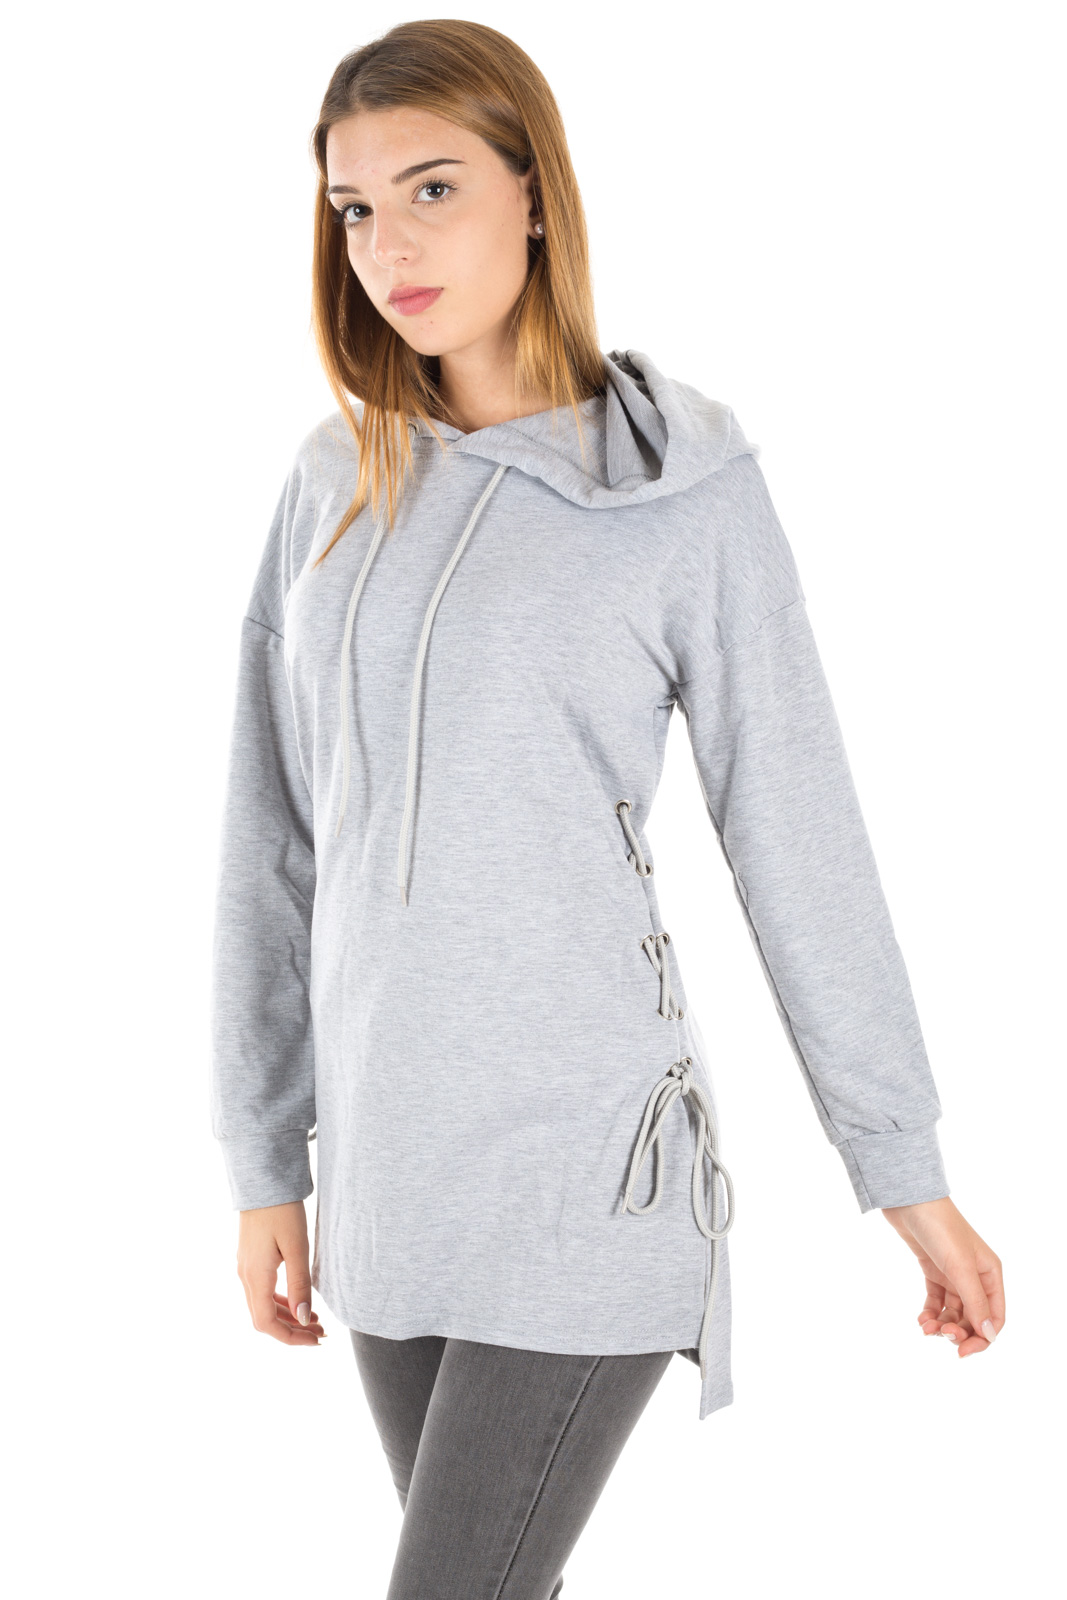 Glamorous - Sweatshirt with weaves on the hips